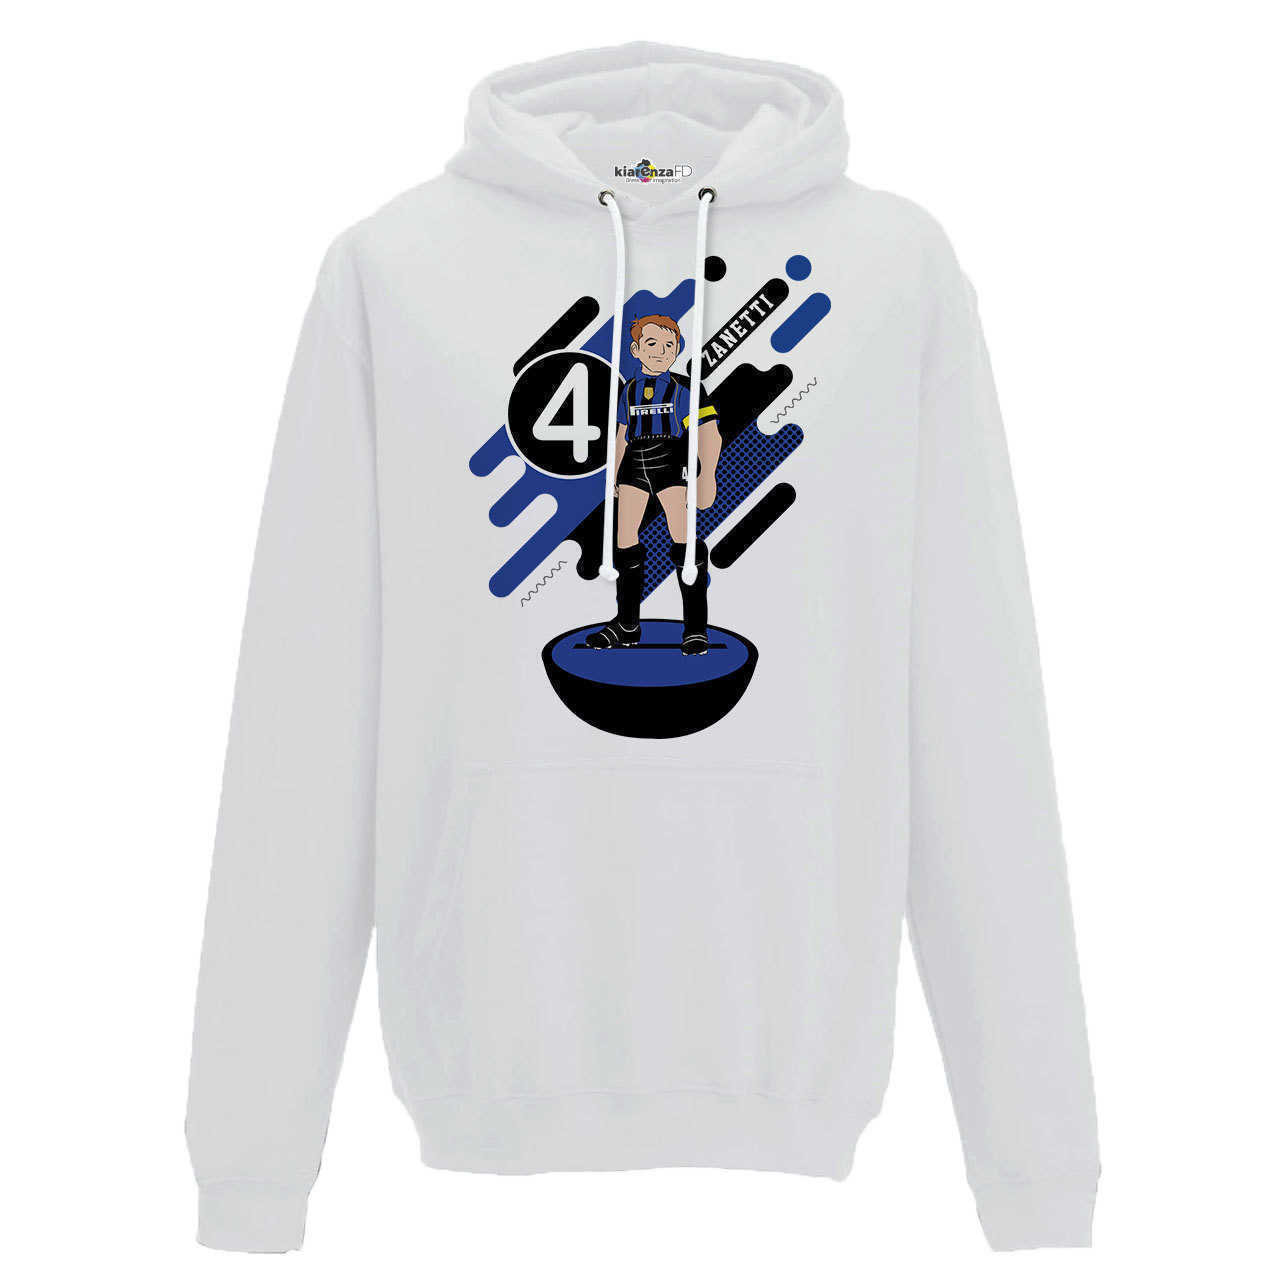 Hood Sweatshirt <font><b>Soccer</b></font> Manga Zanetti <font><b>Inter</b></font> <font><b>Milan</b></font> Legend Spoof Subbuteo Holly and Benji S image